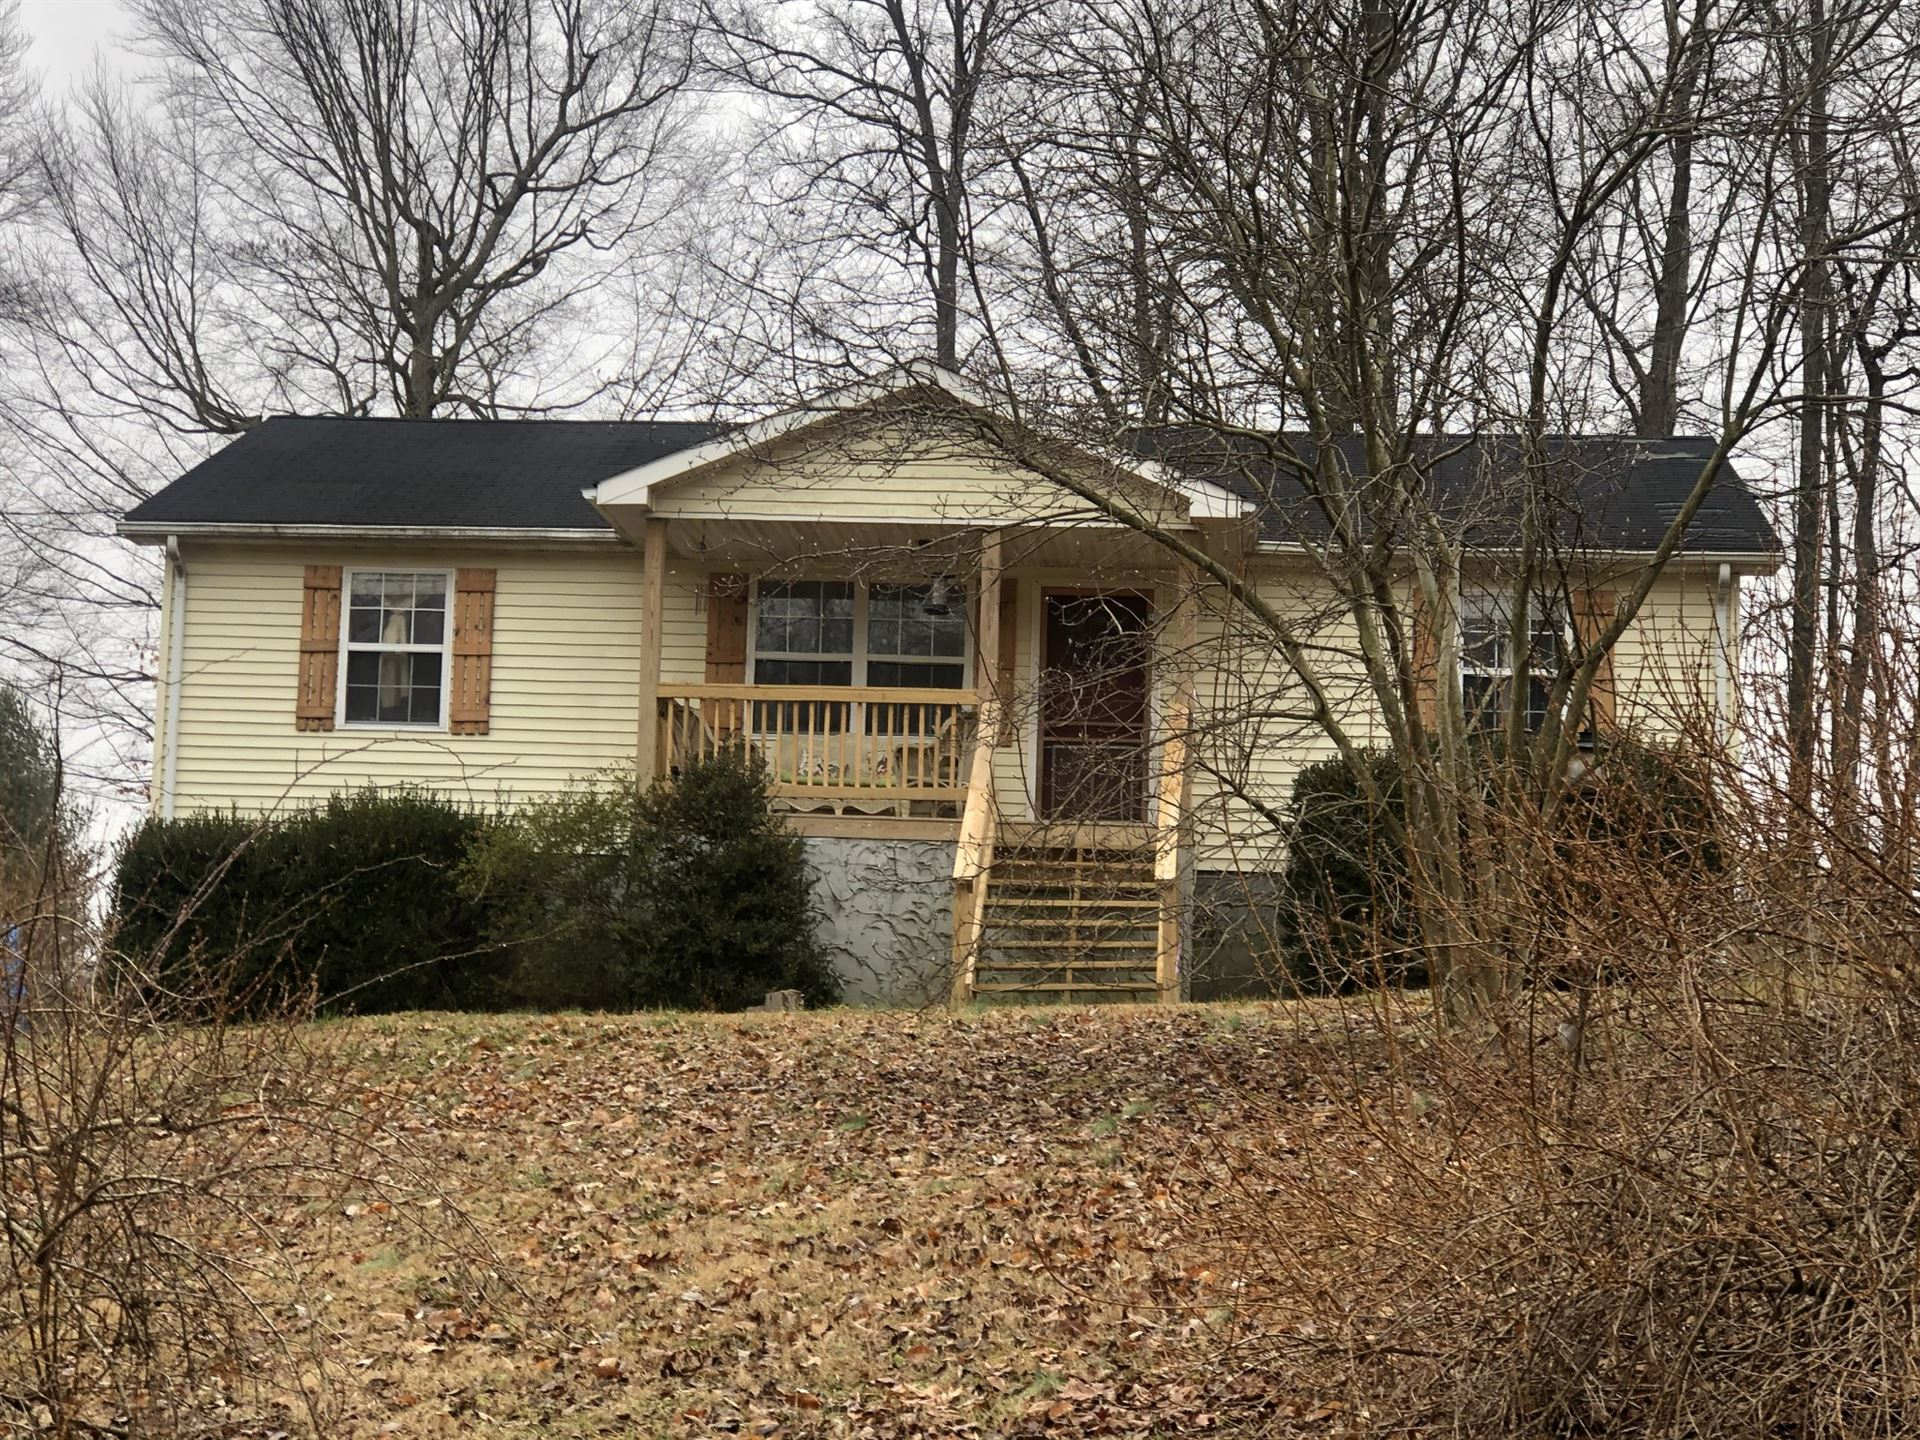 66 Russell Rd, Red Boiling Springs, TN 37150 - MLS#: 2227961